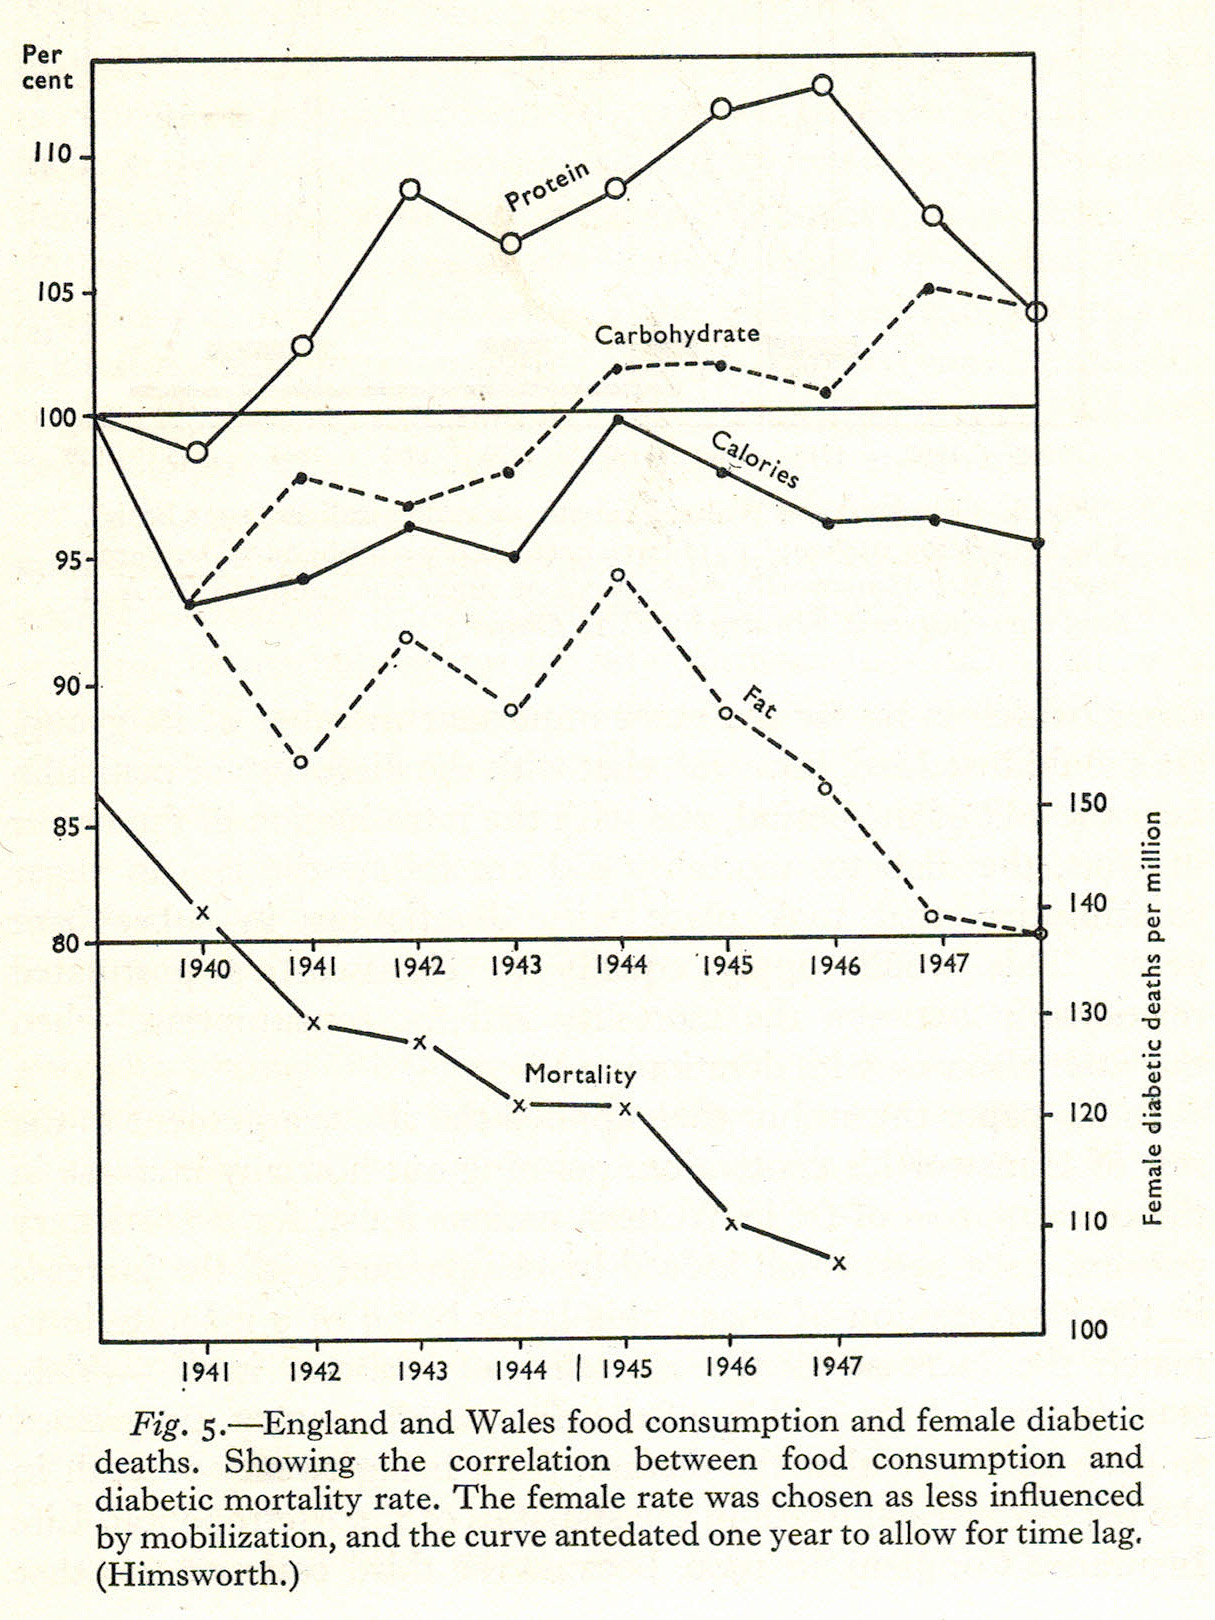 Fat consumption fall during WWII-1